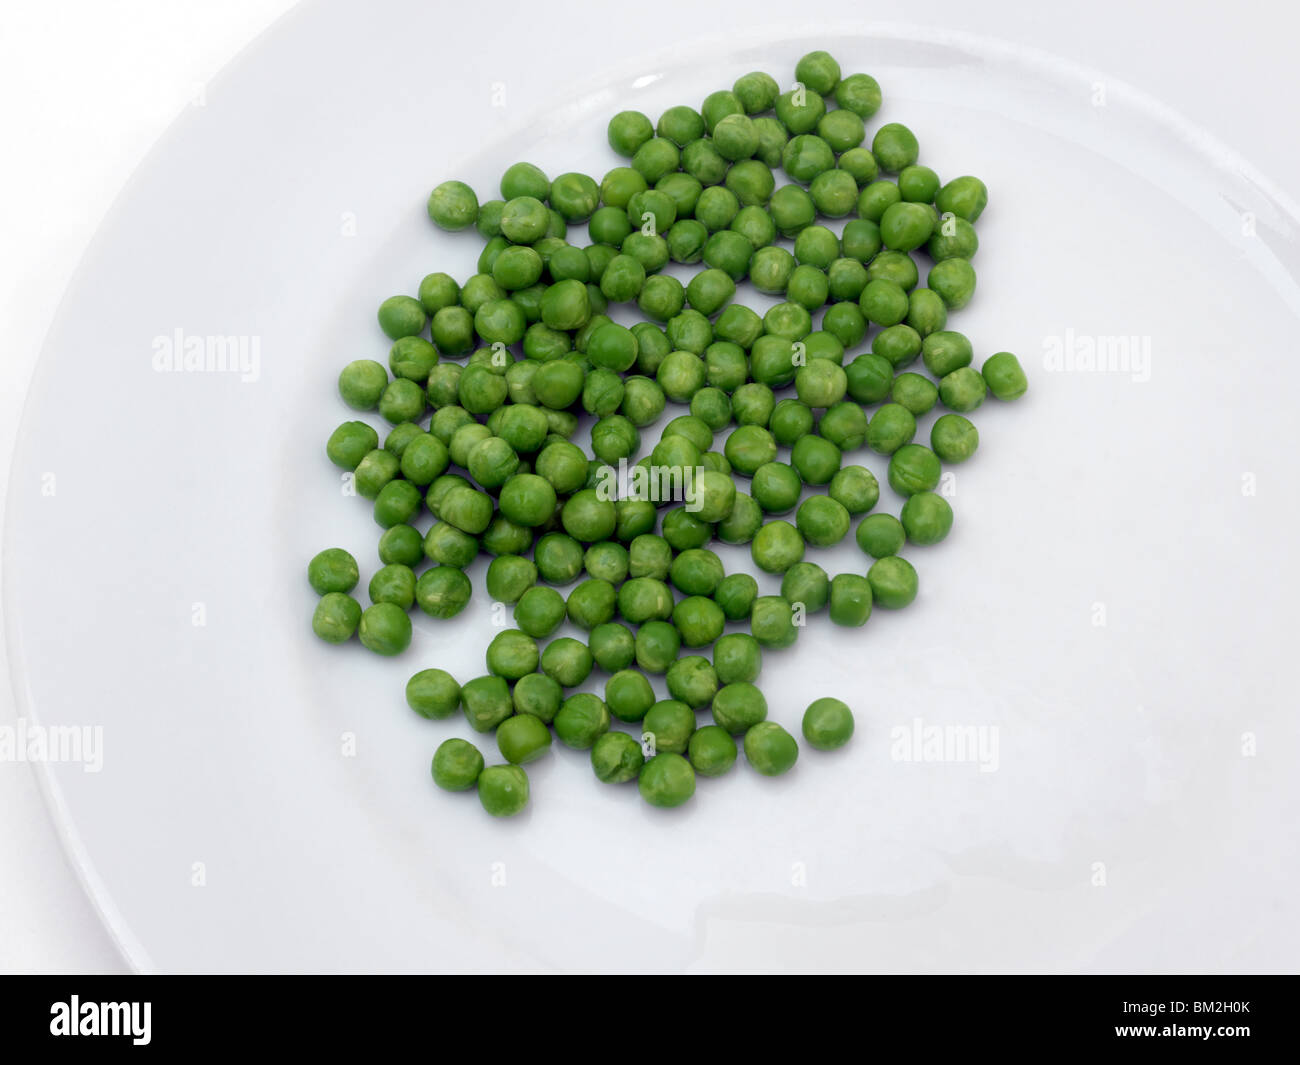 Peas On A Plate - Stock Image